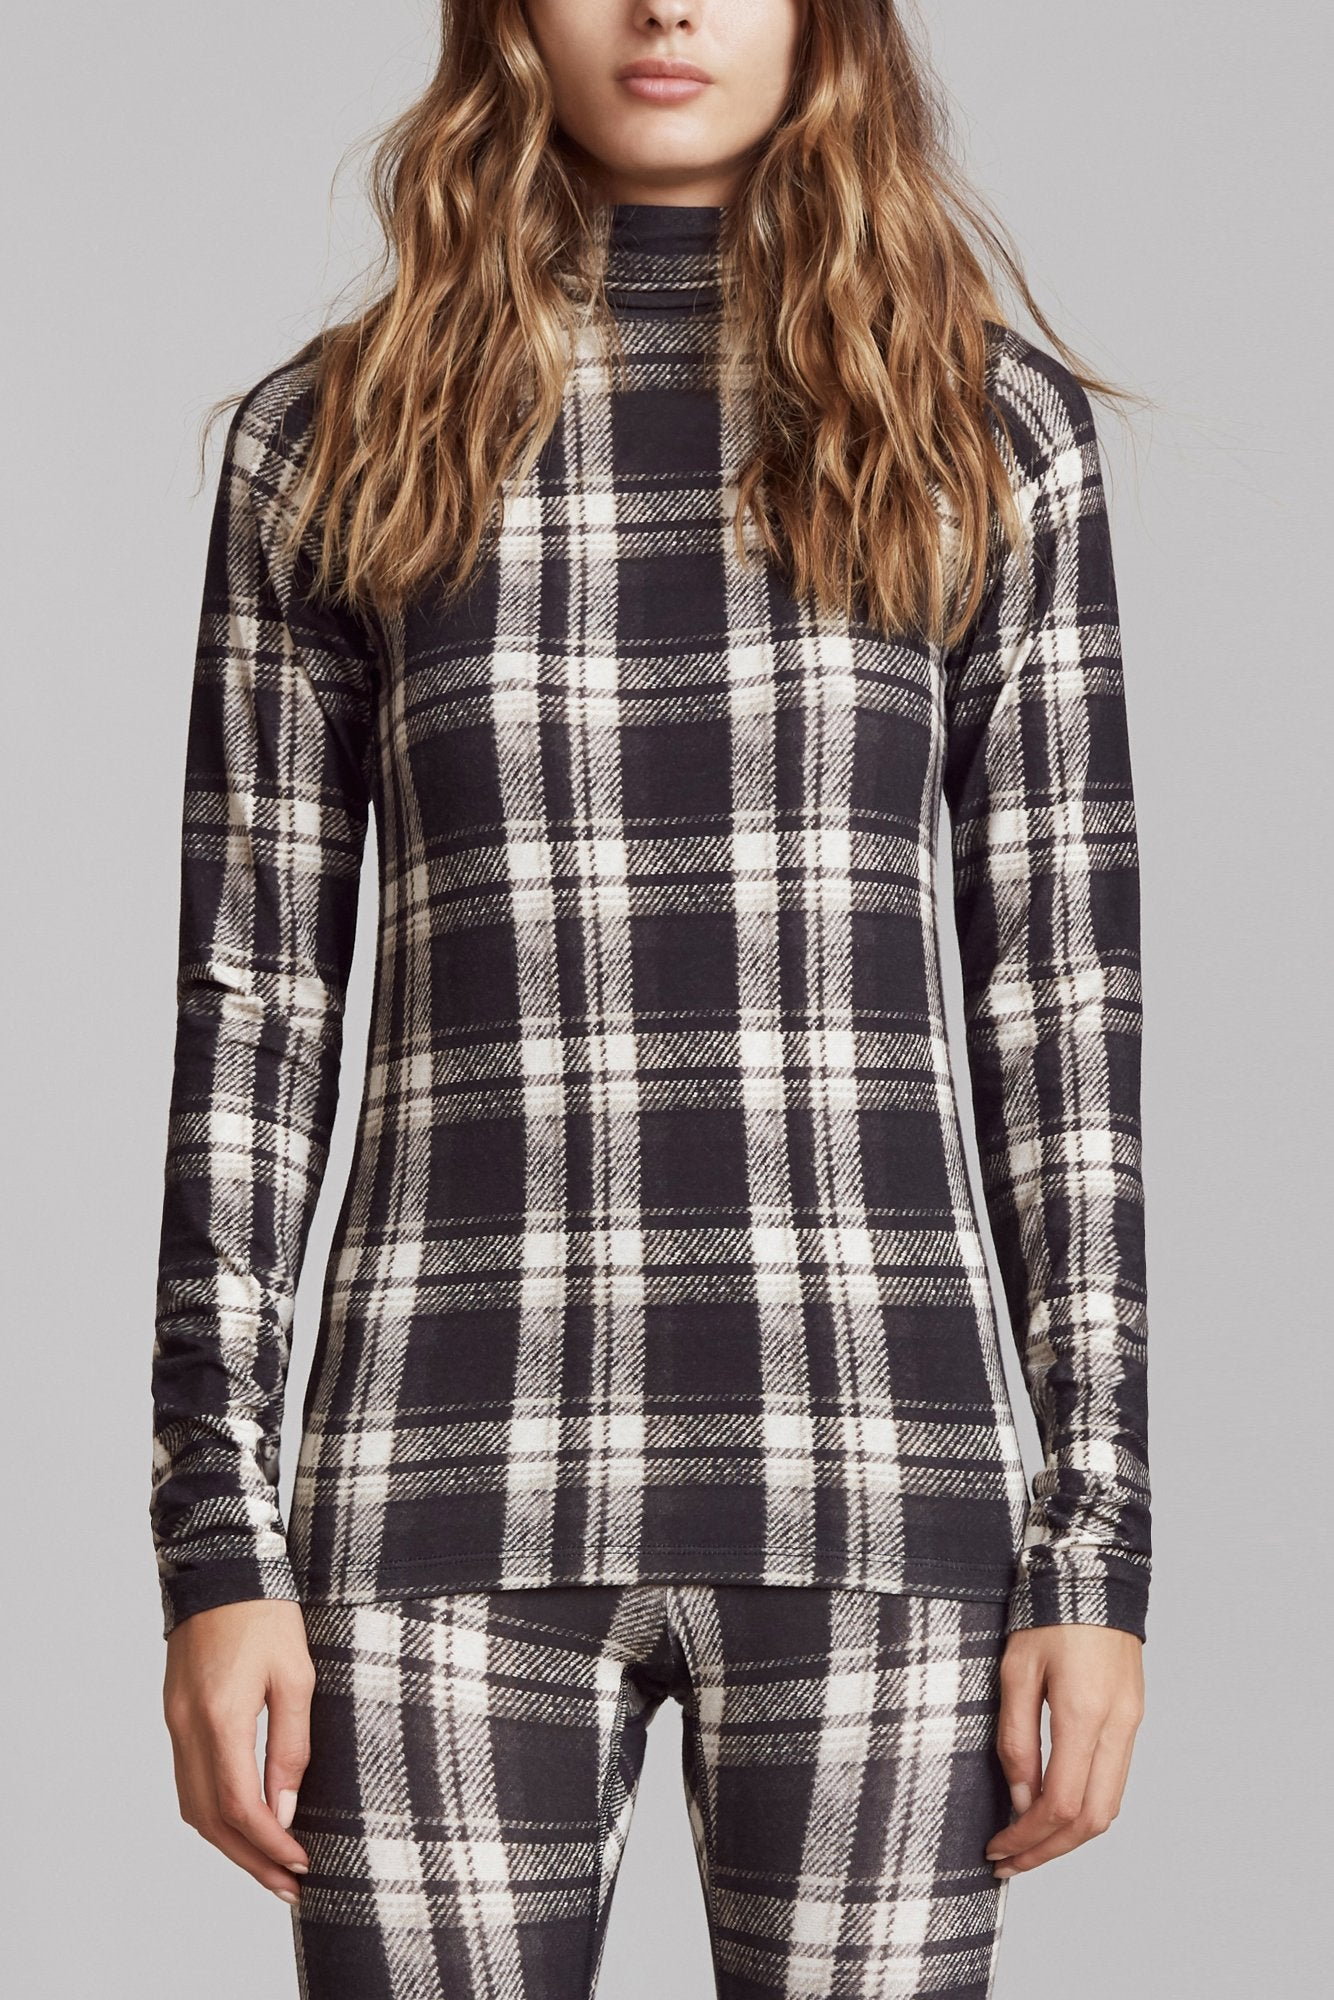 Black and White Plaid Turtleneck